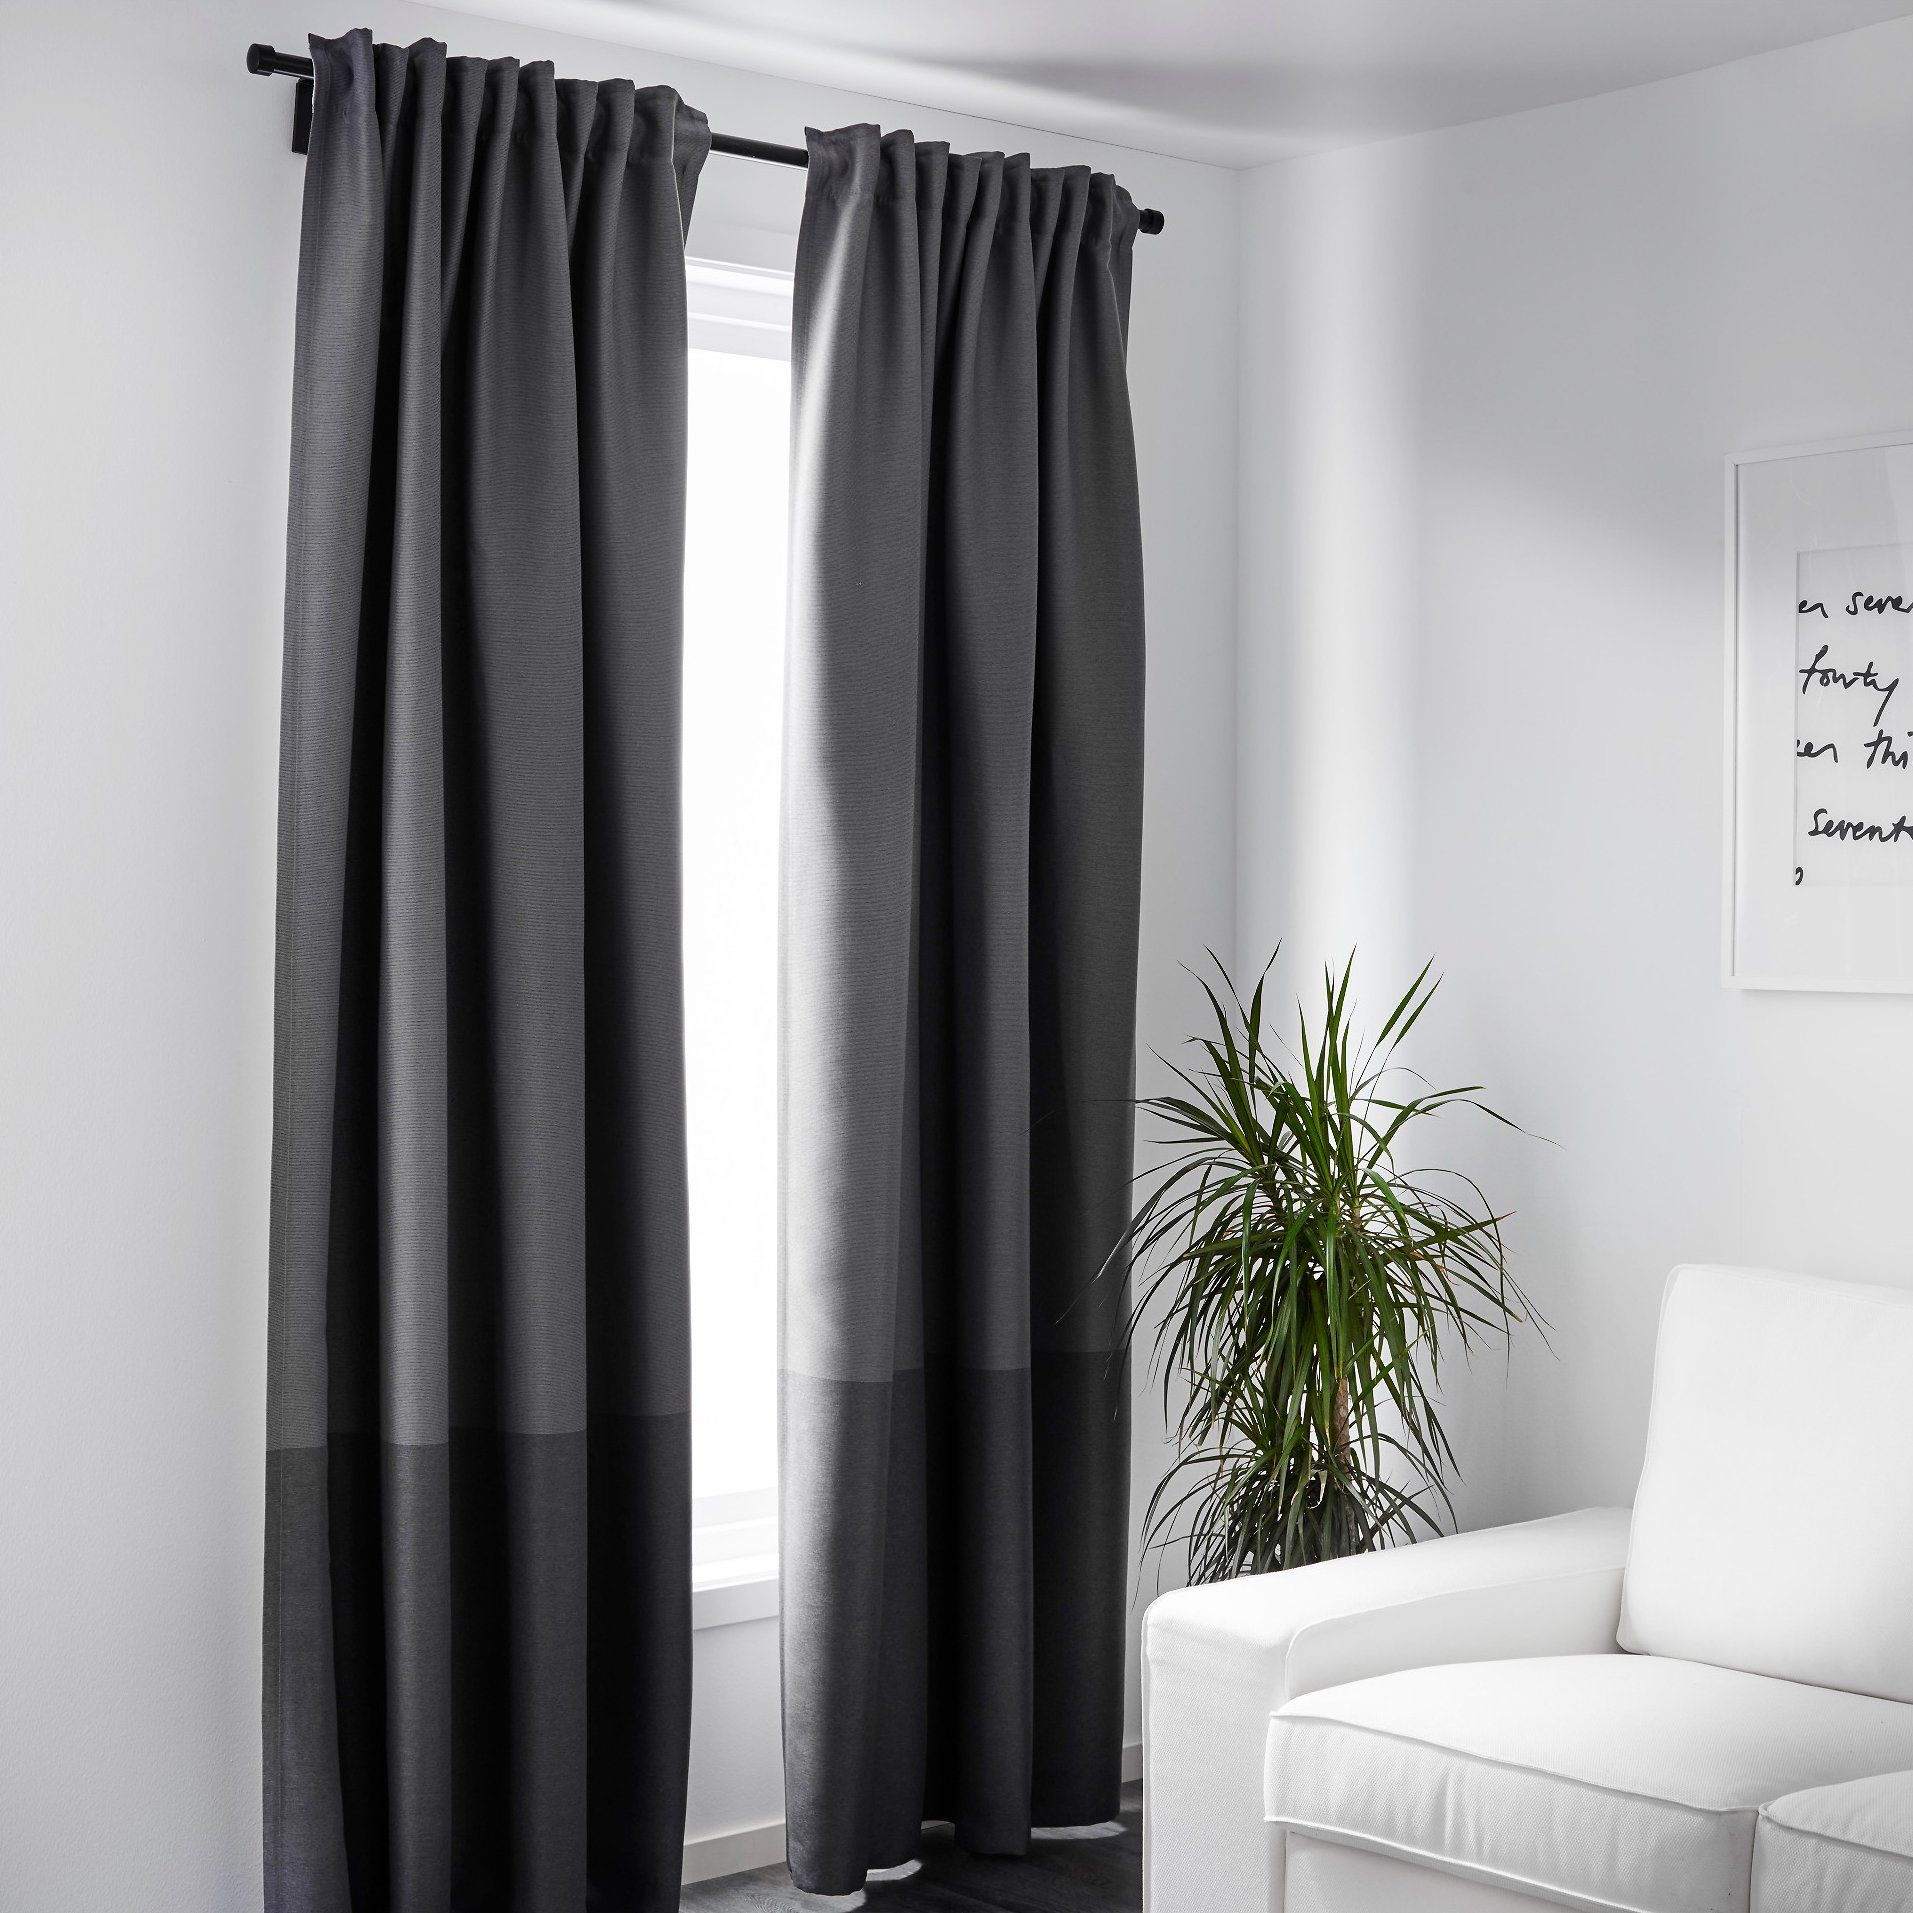 These 50 Ikea Blackout Curtains Gave Me The Best Night S Sleep Ever Brown Curtains Block Out Curtains Ikea Curtains